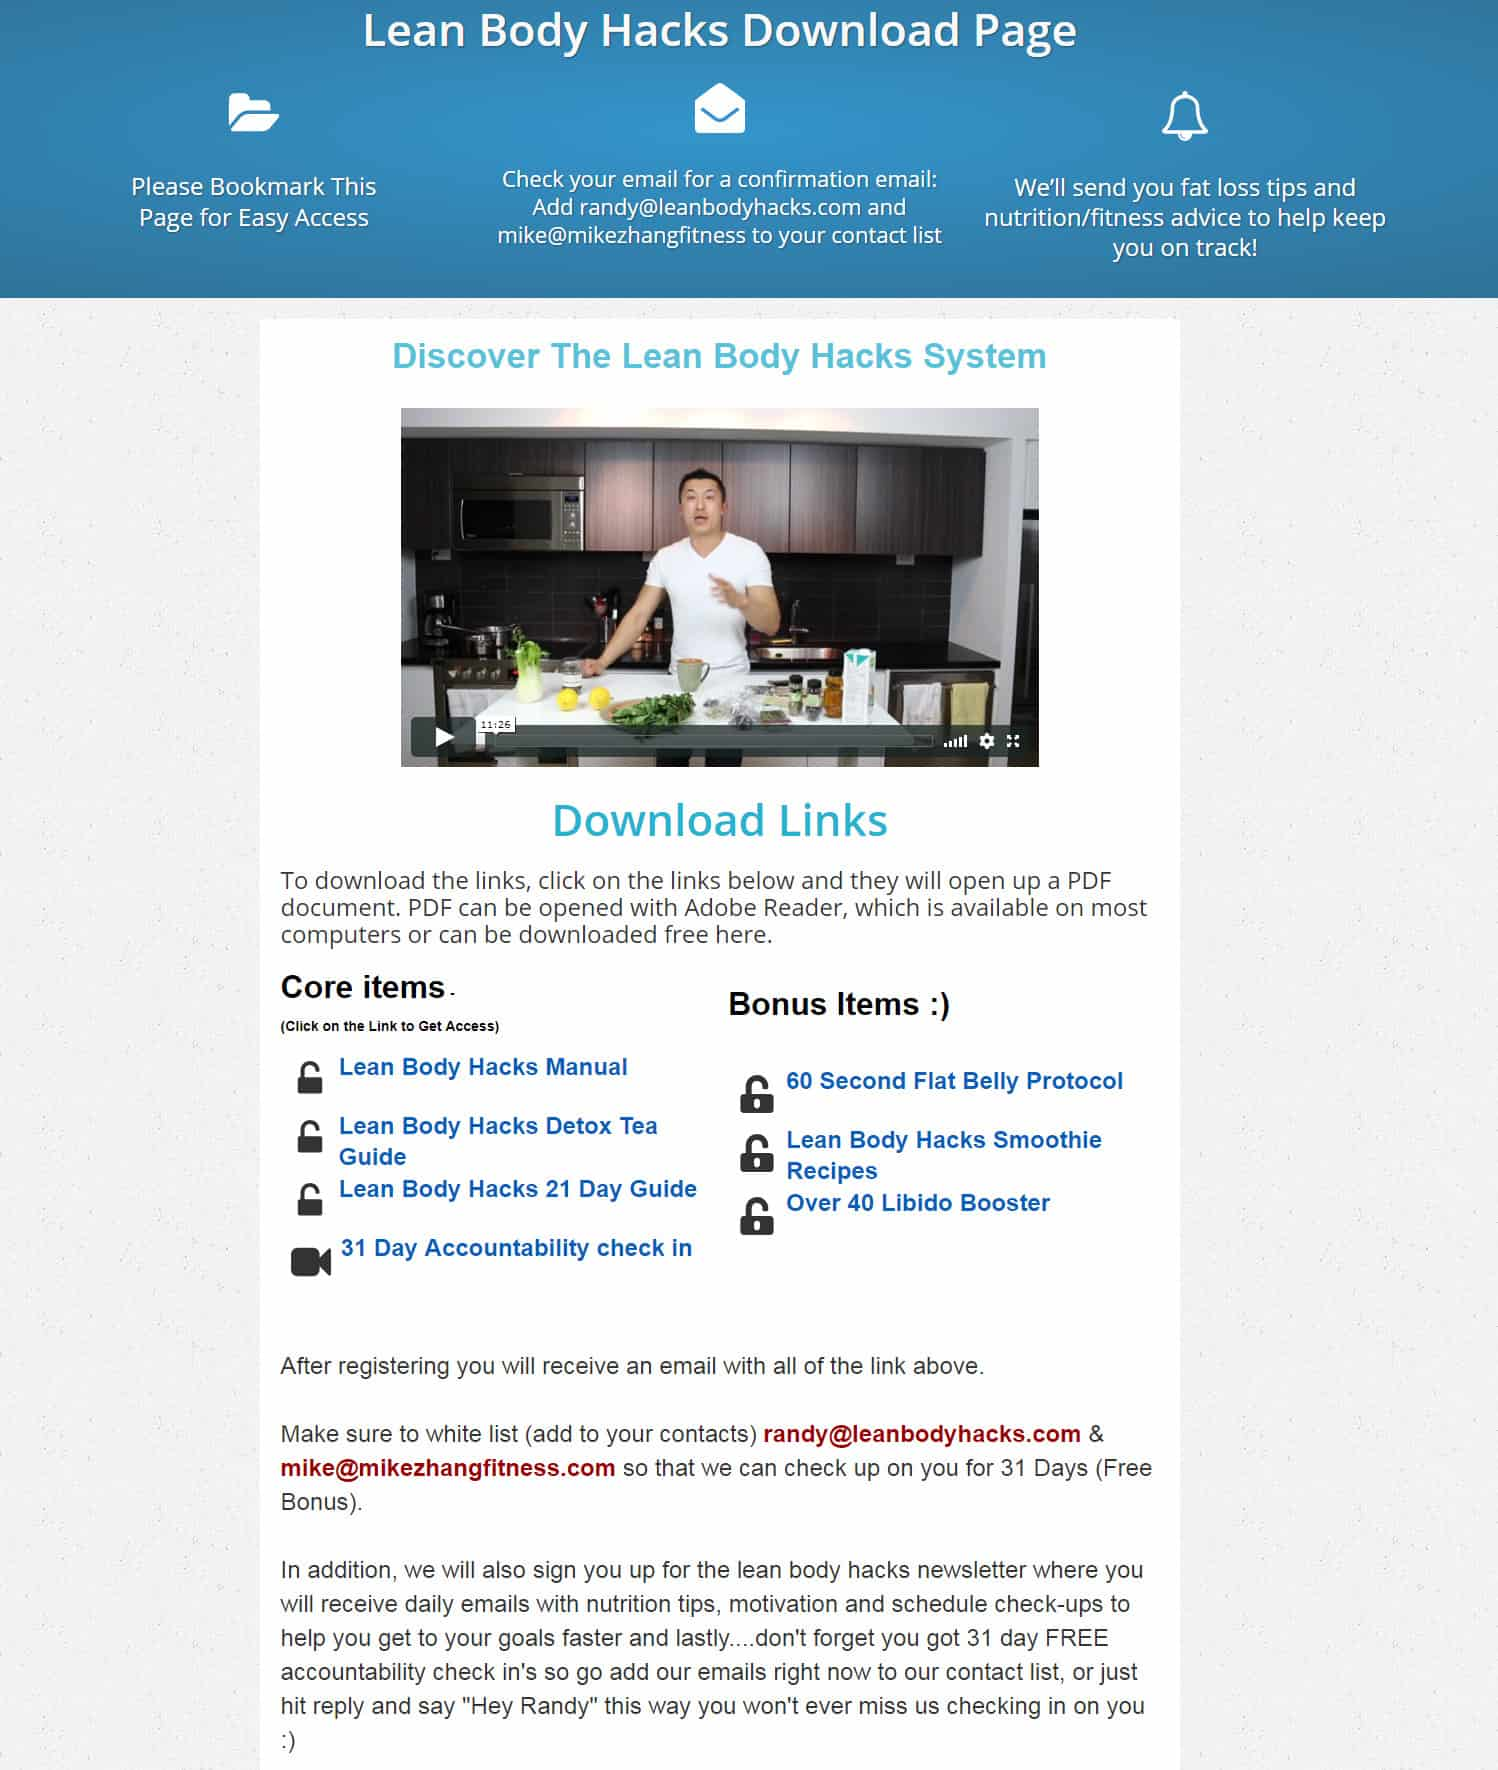 Lean Body Hacks Download Page